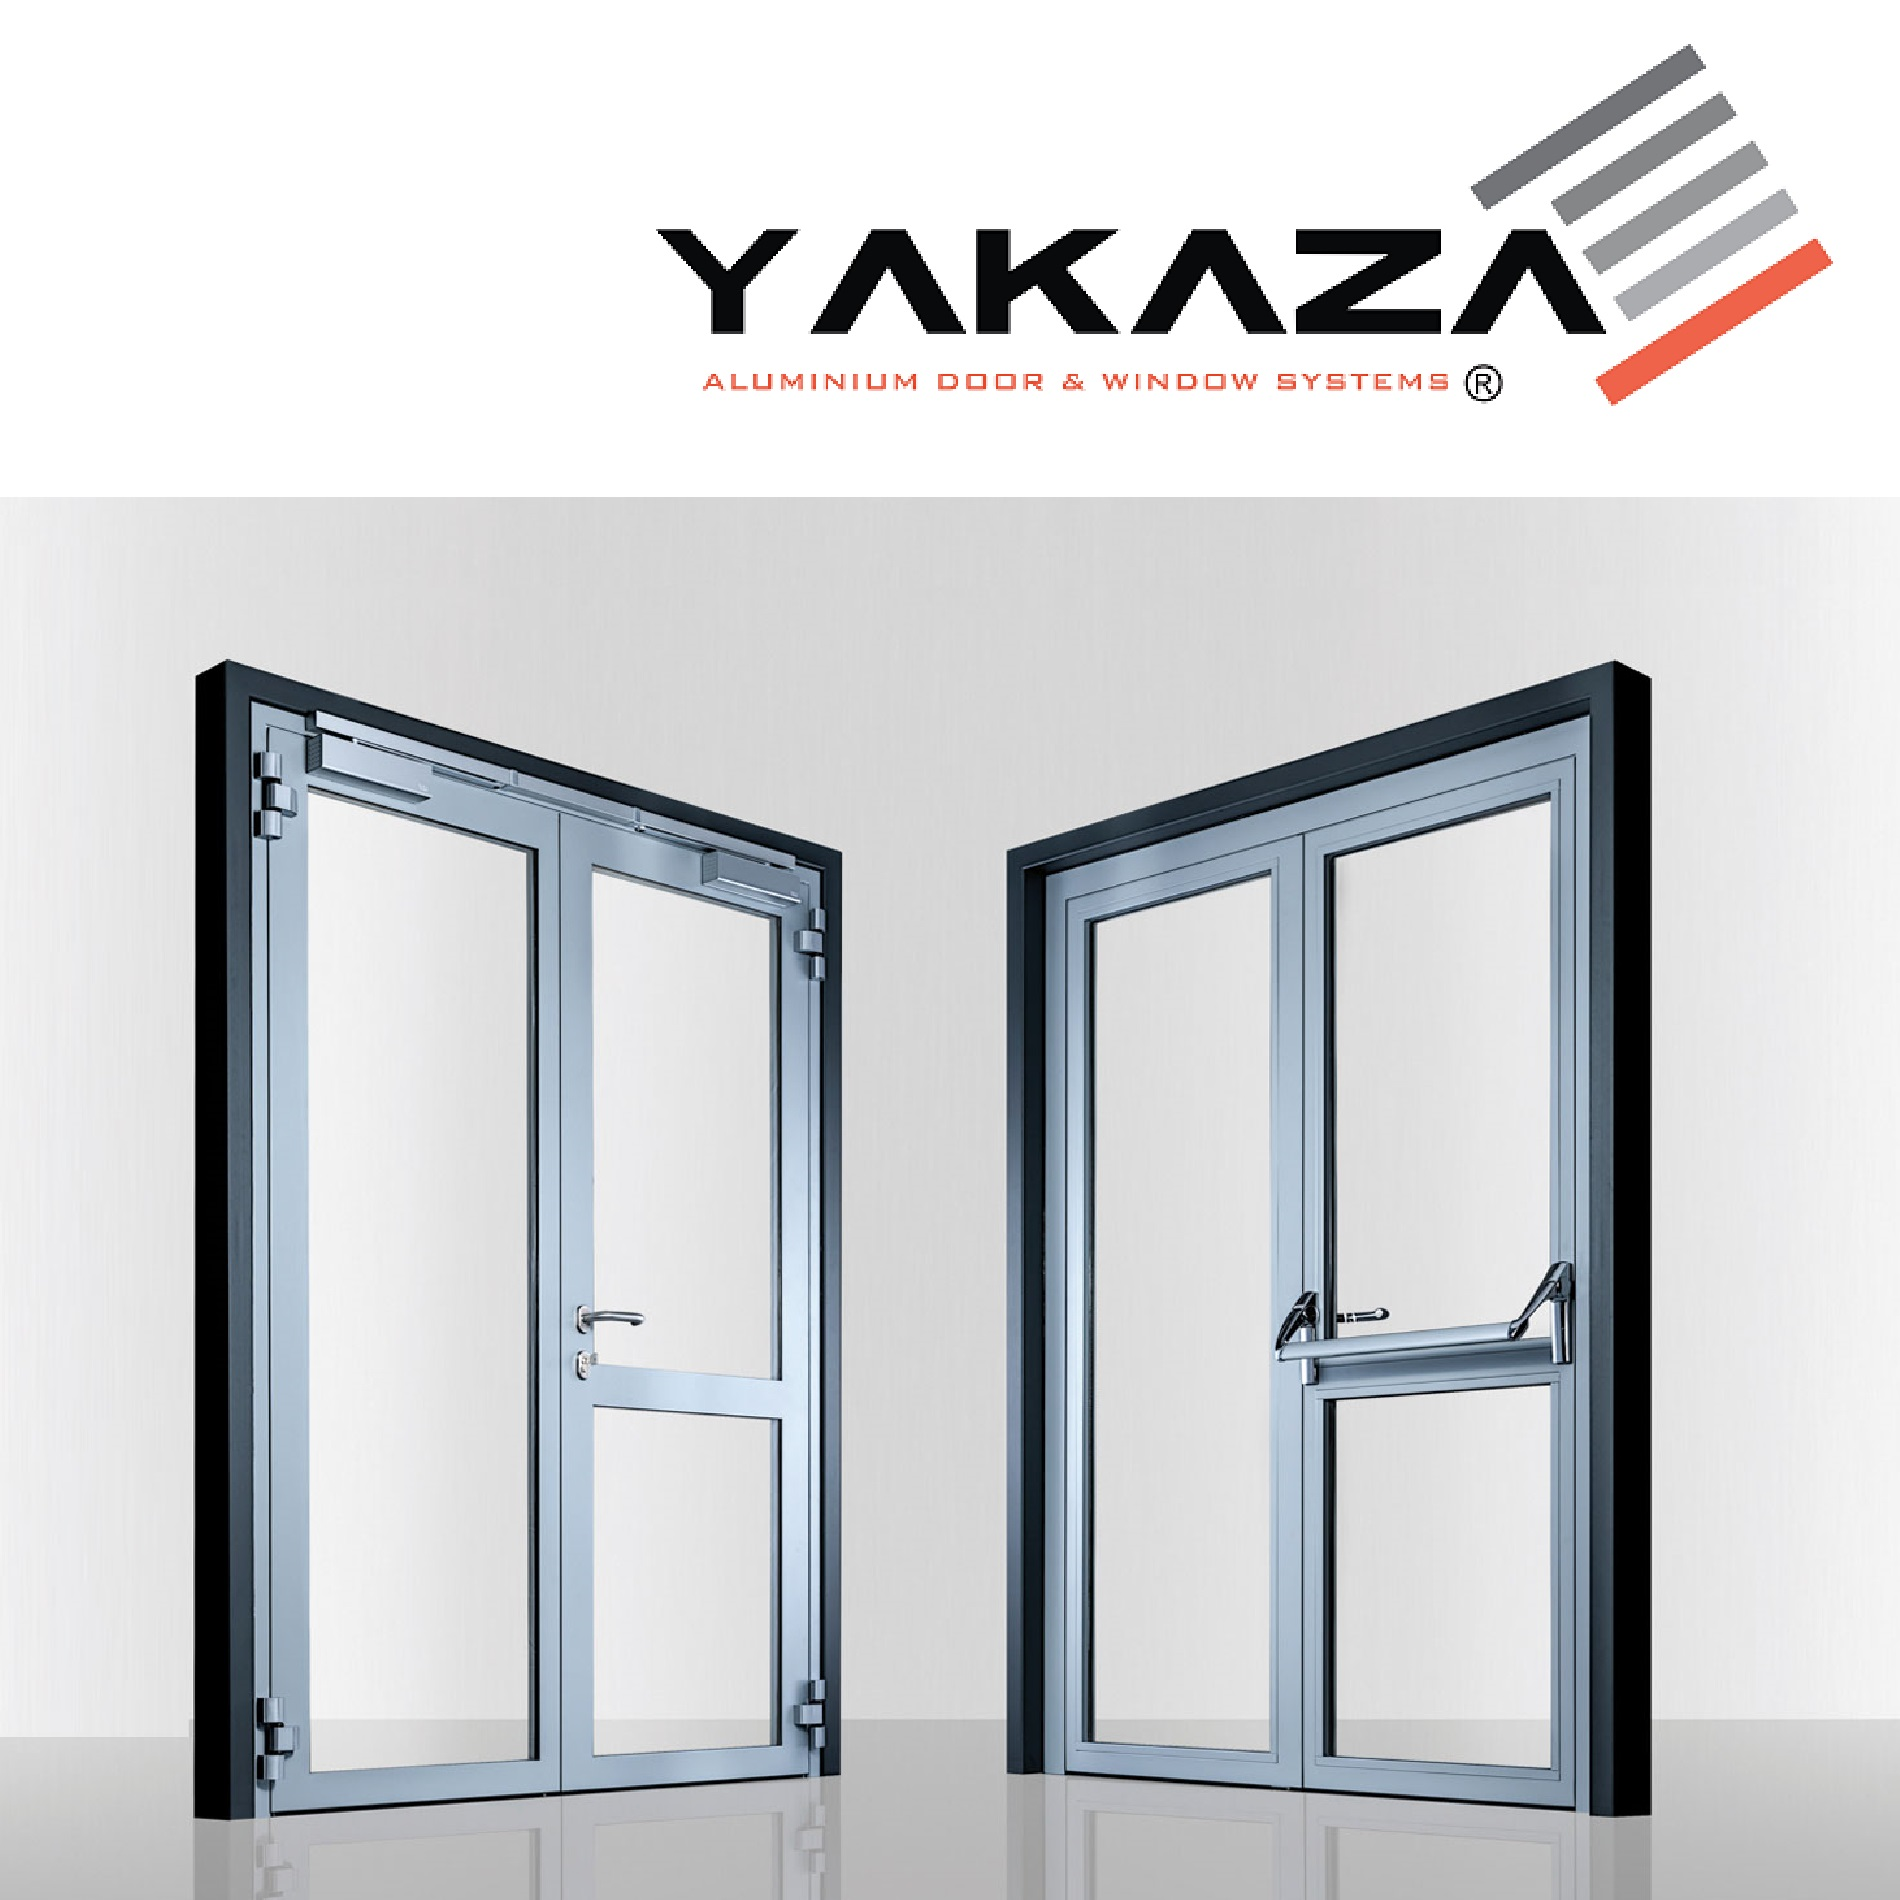 FIRE RESISTANT ALUMINIUM DOOR & WINDOW SYSTEMS